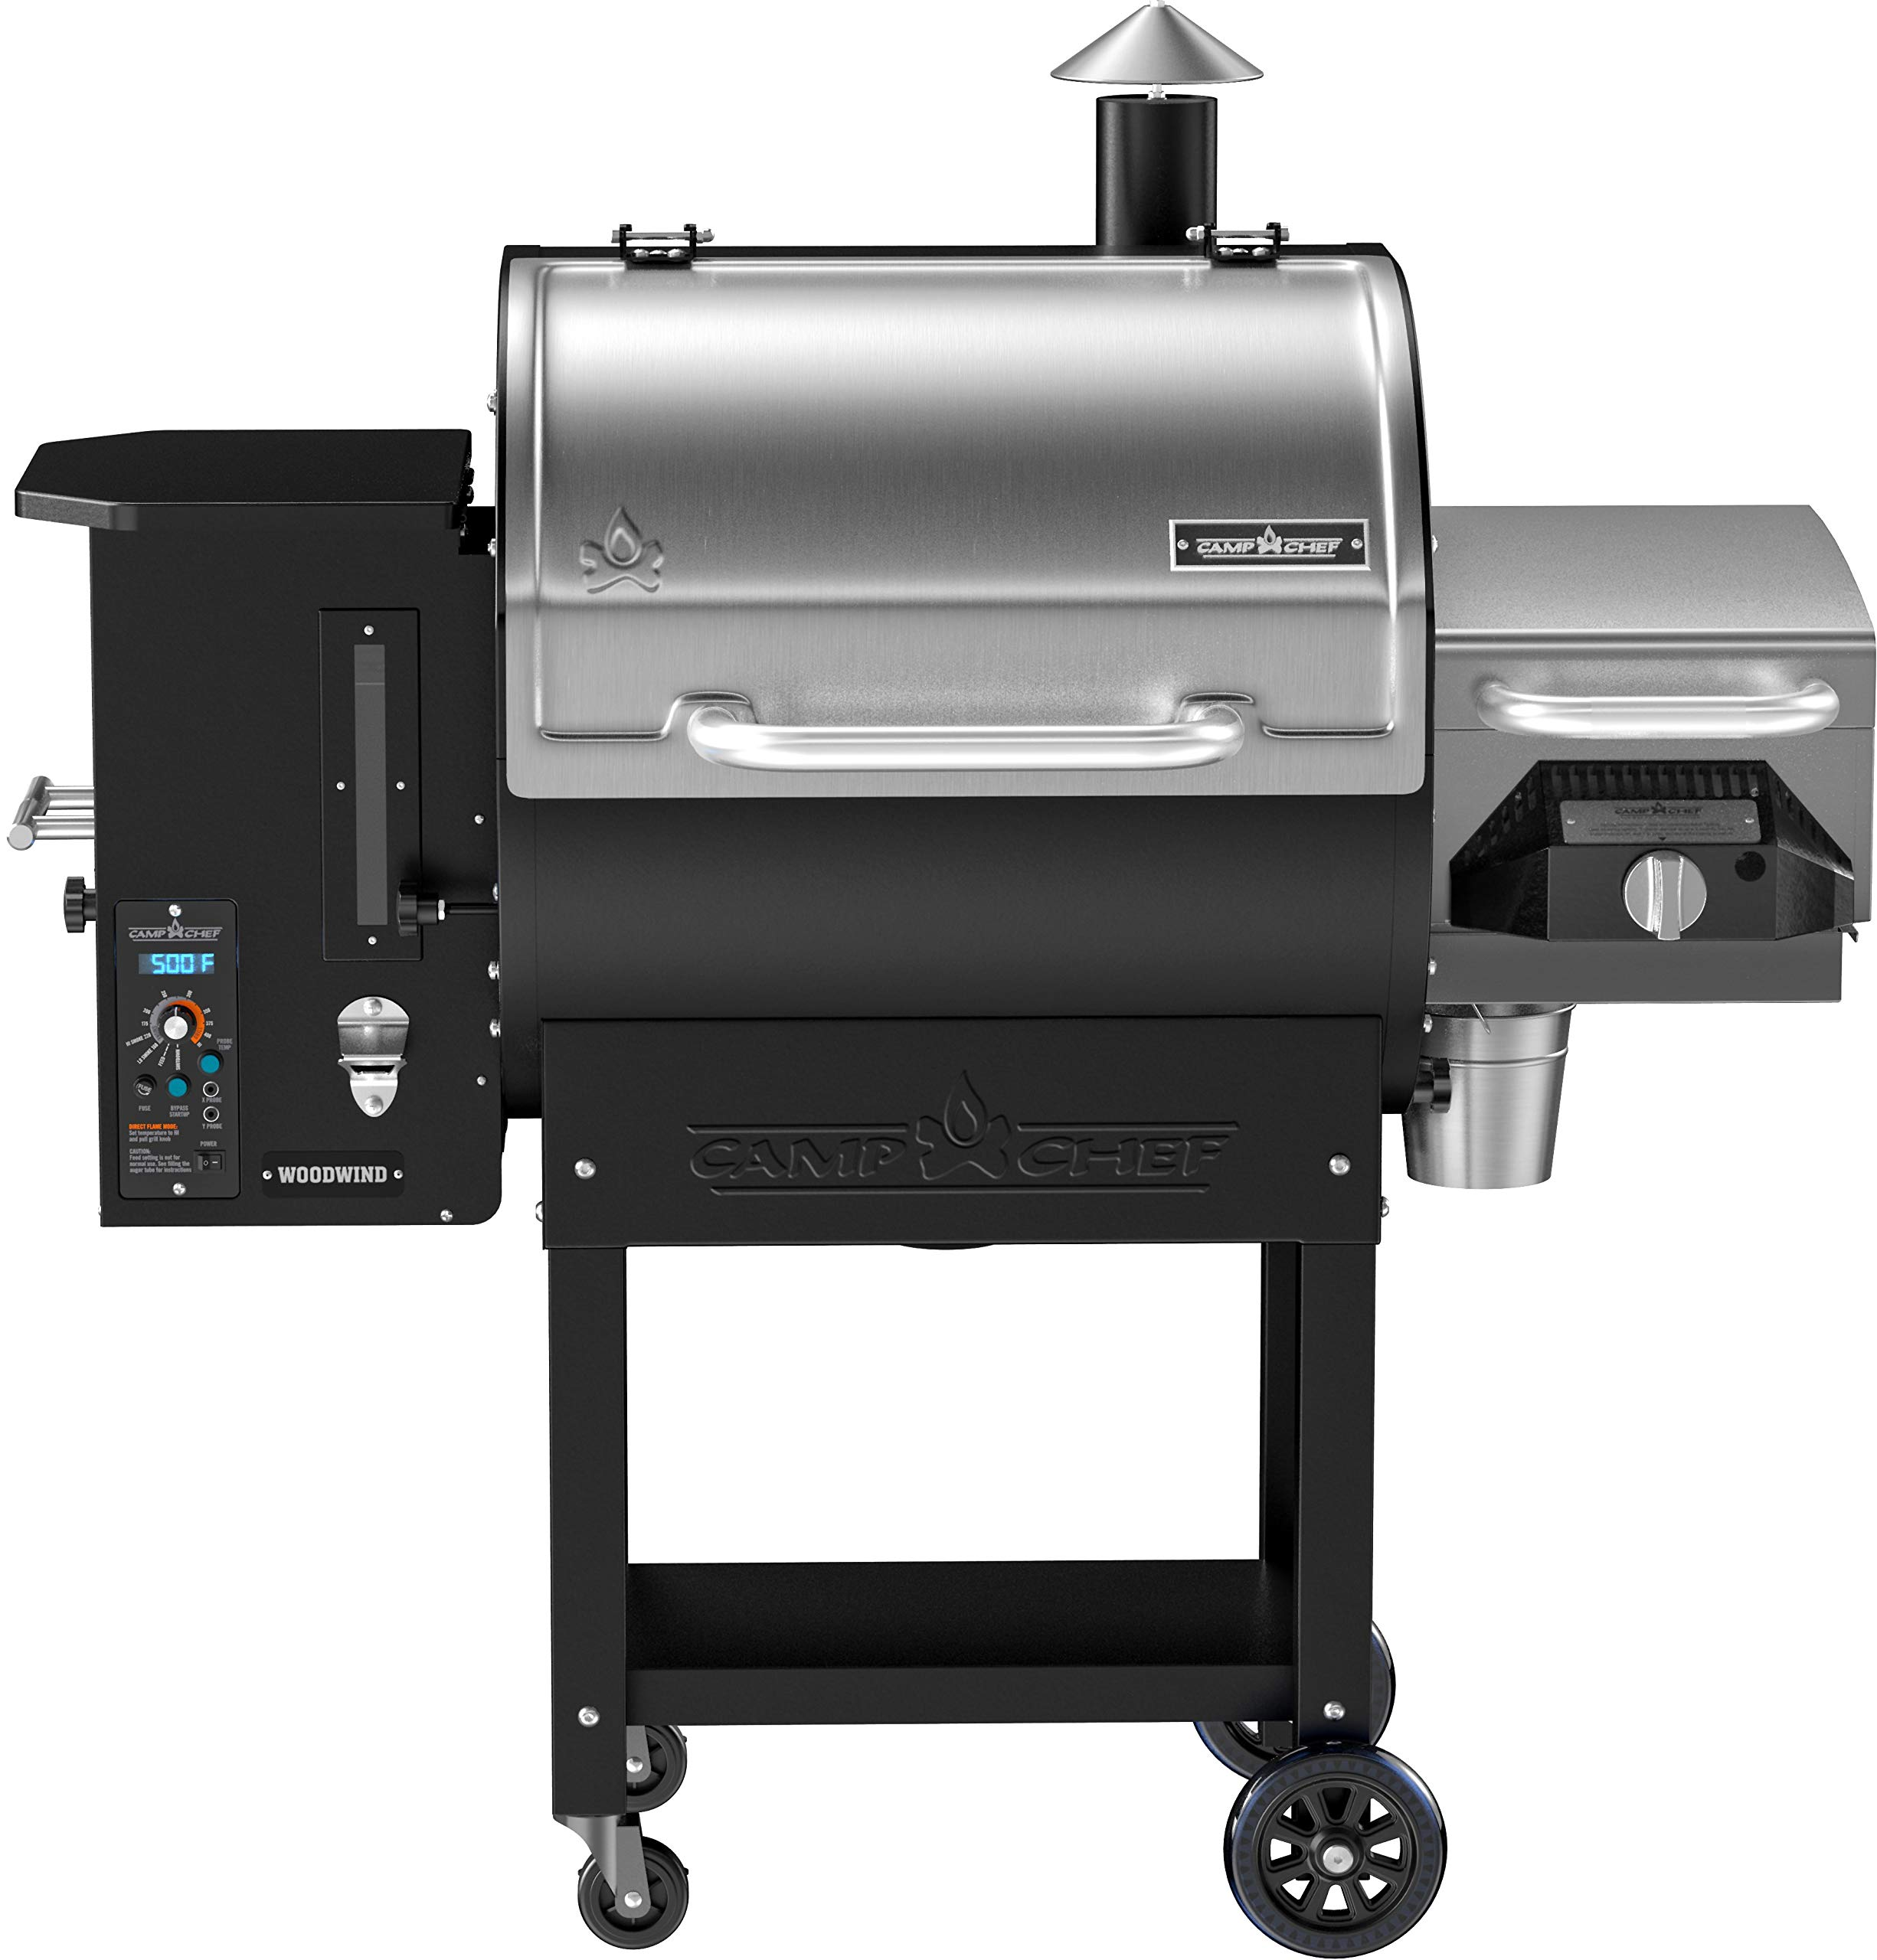 Camp Chef Woodwind Pellet Grill with Sear Box - Smart Smoke Technology - Ash Cleanout System (Woodwind SG) by Camp Chef (Image #1)